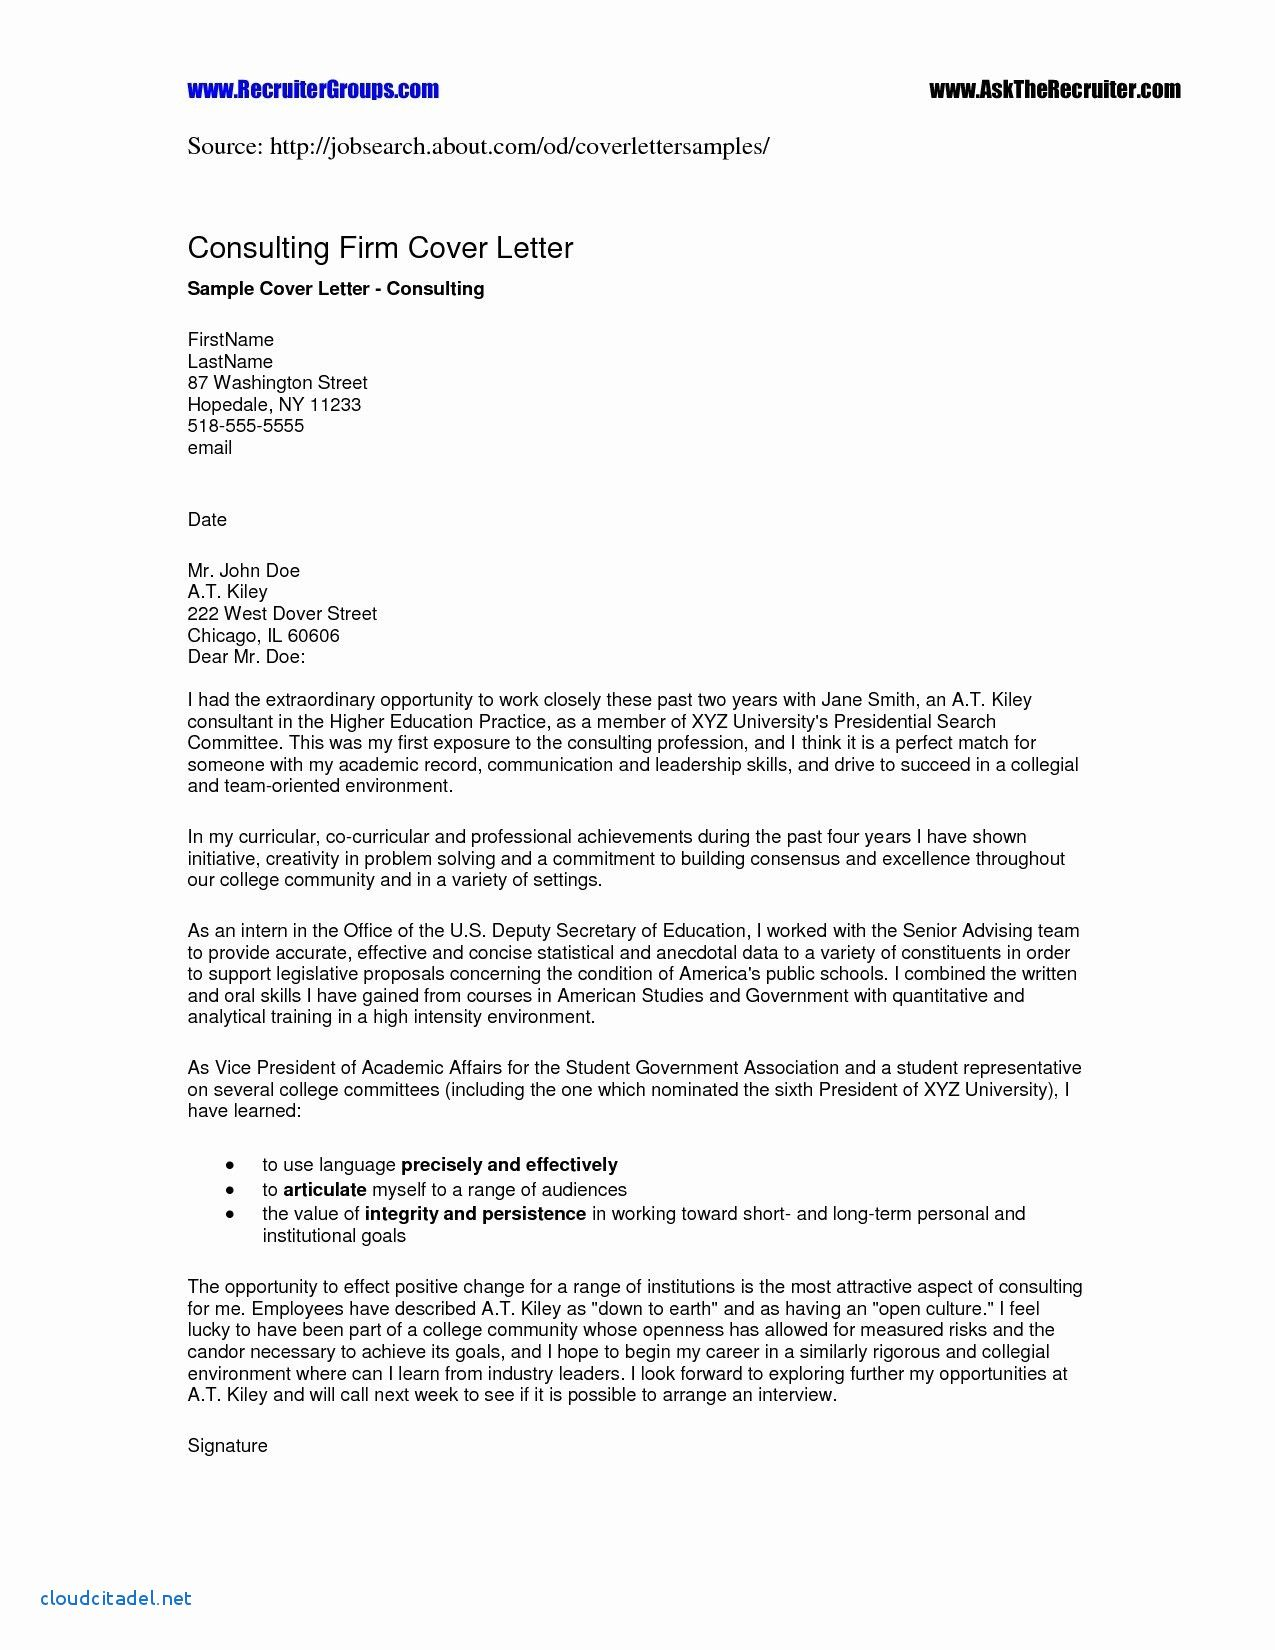 Cover Letter Template Higher Education 2 Cover Letter Template